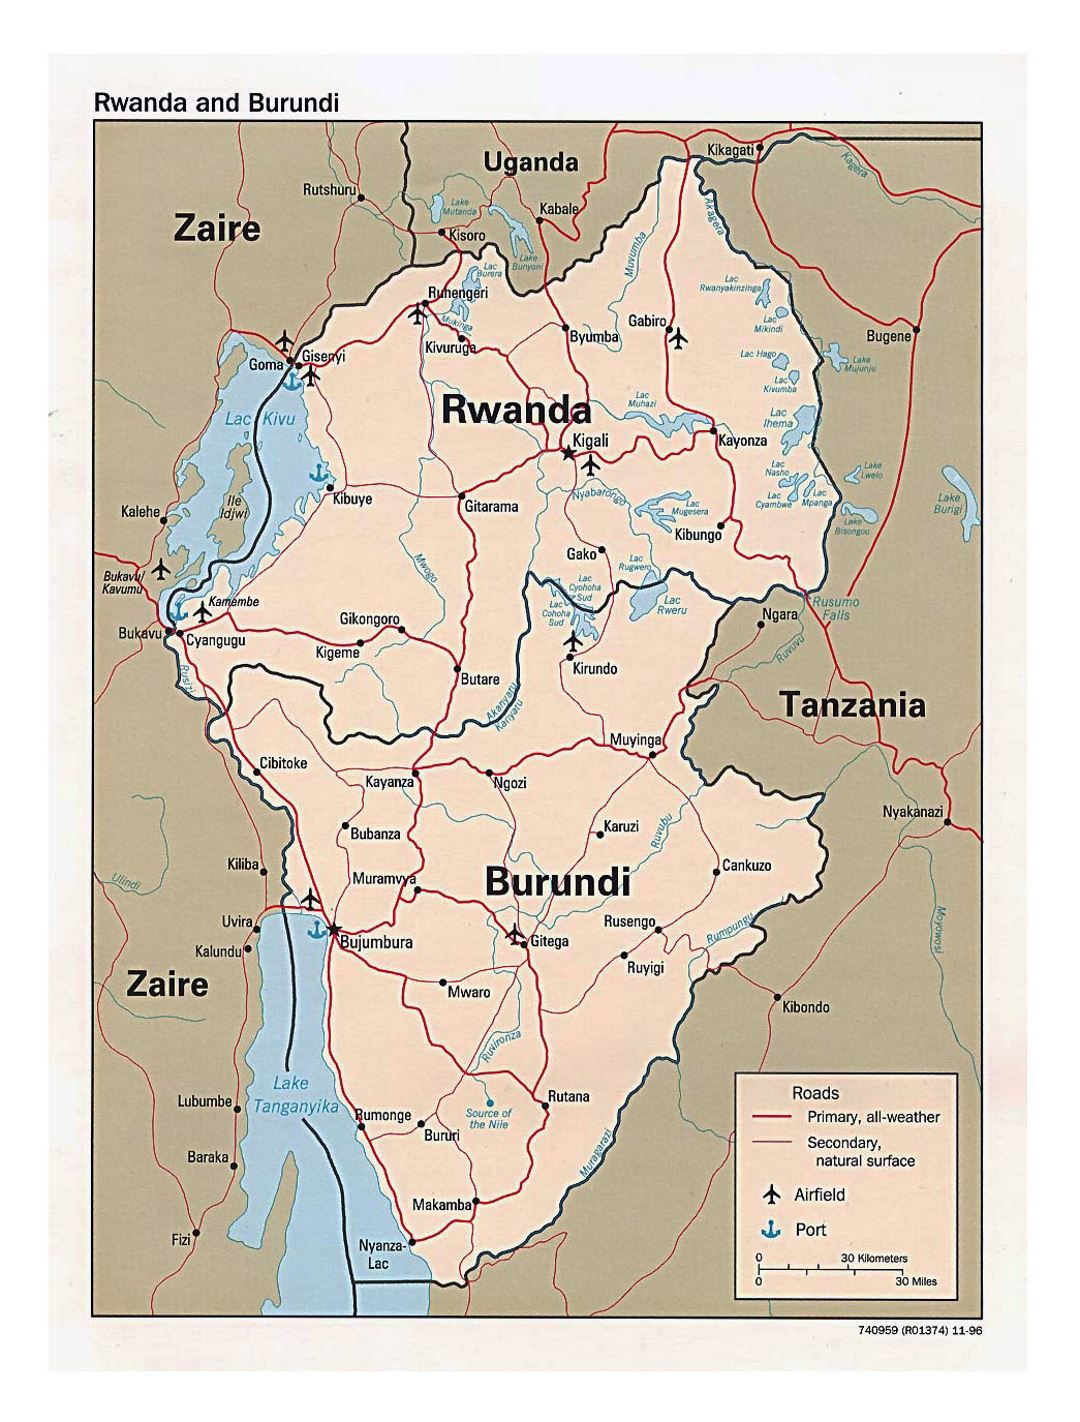 Detailed political map of Rwanda and Burundi with roads, major cities, airports and ports - 1996